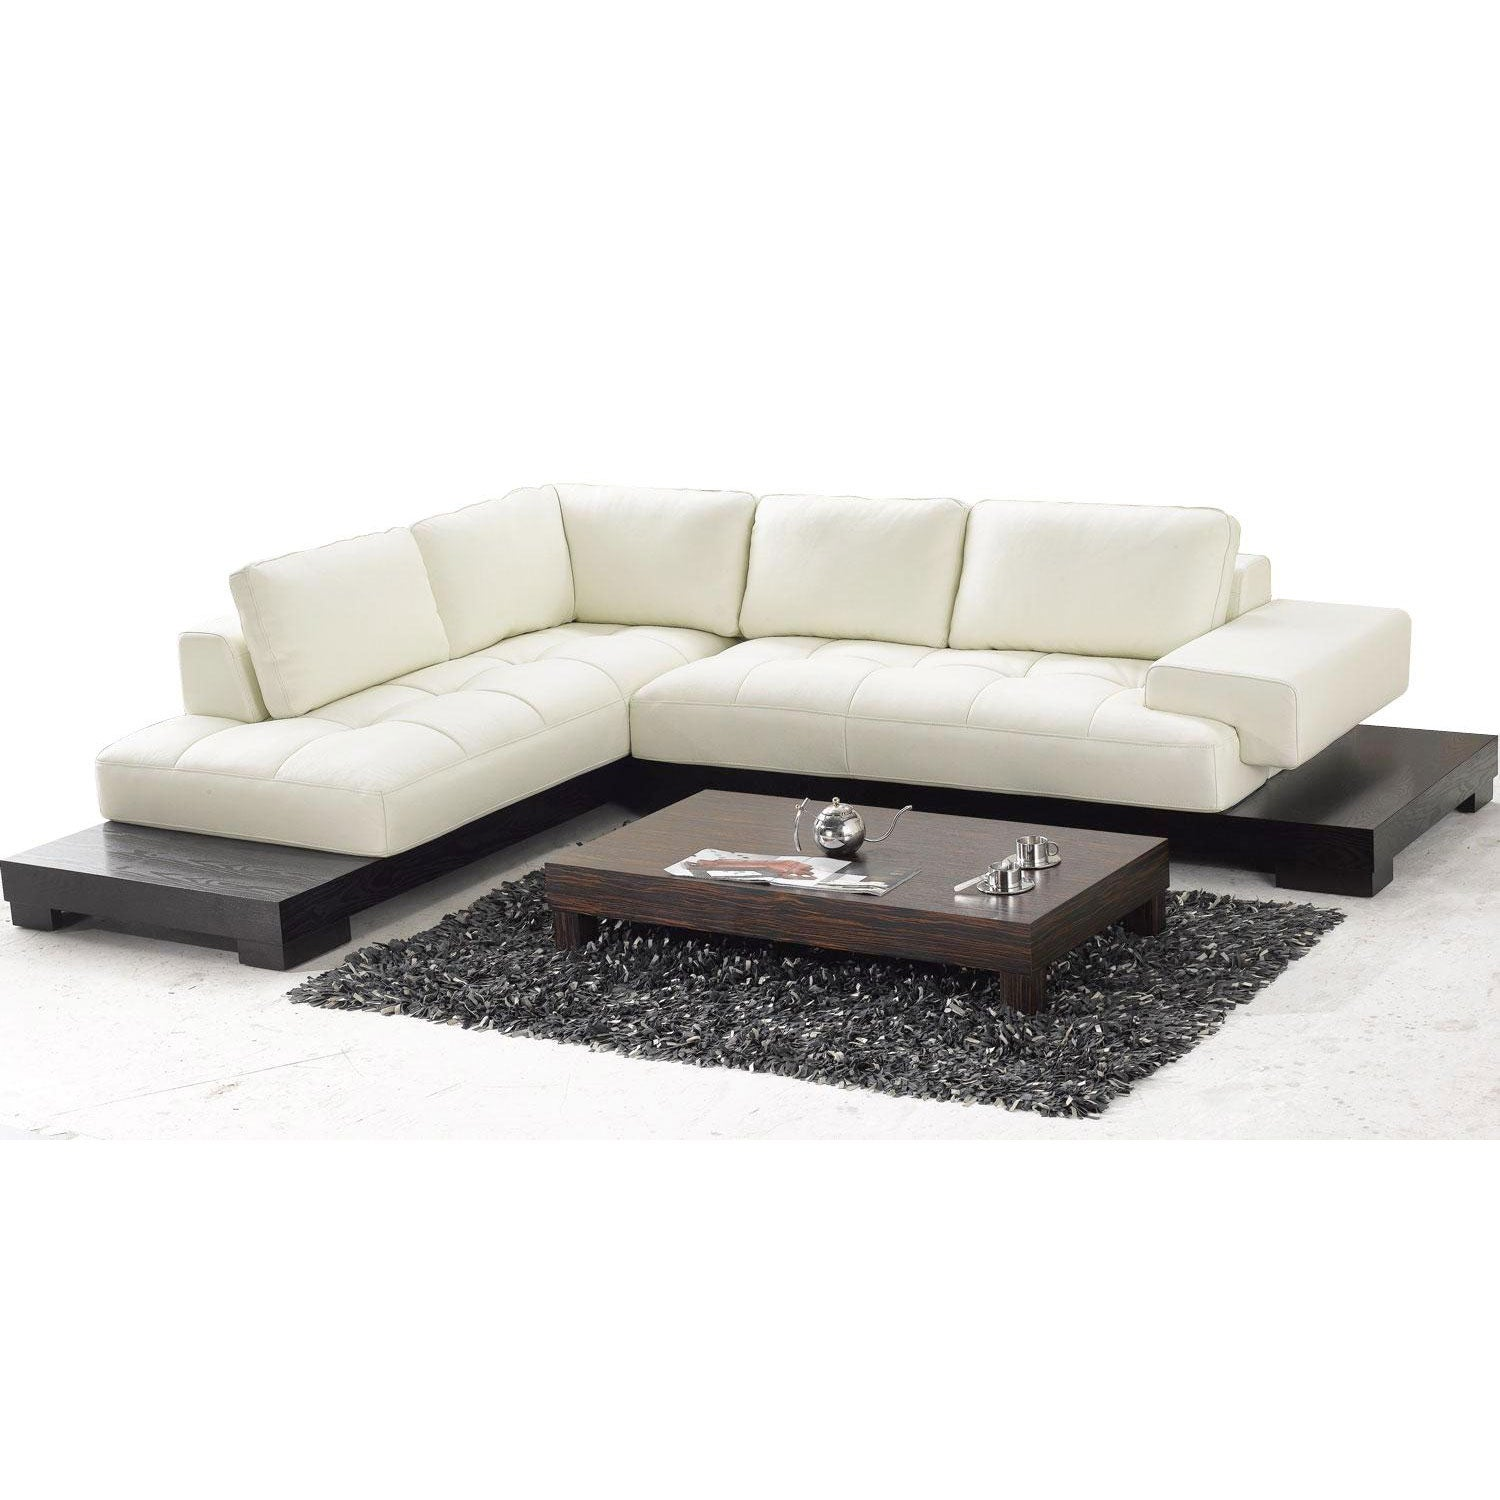 Tosh furniture beige leather sectional sofa overstock for Small sectional sofa overstock